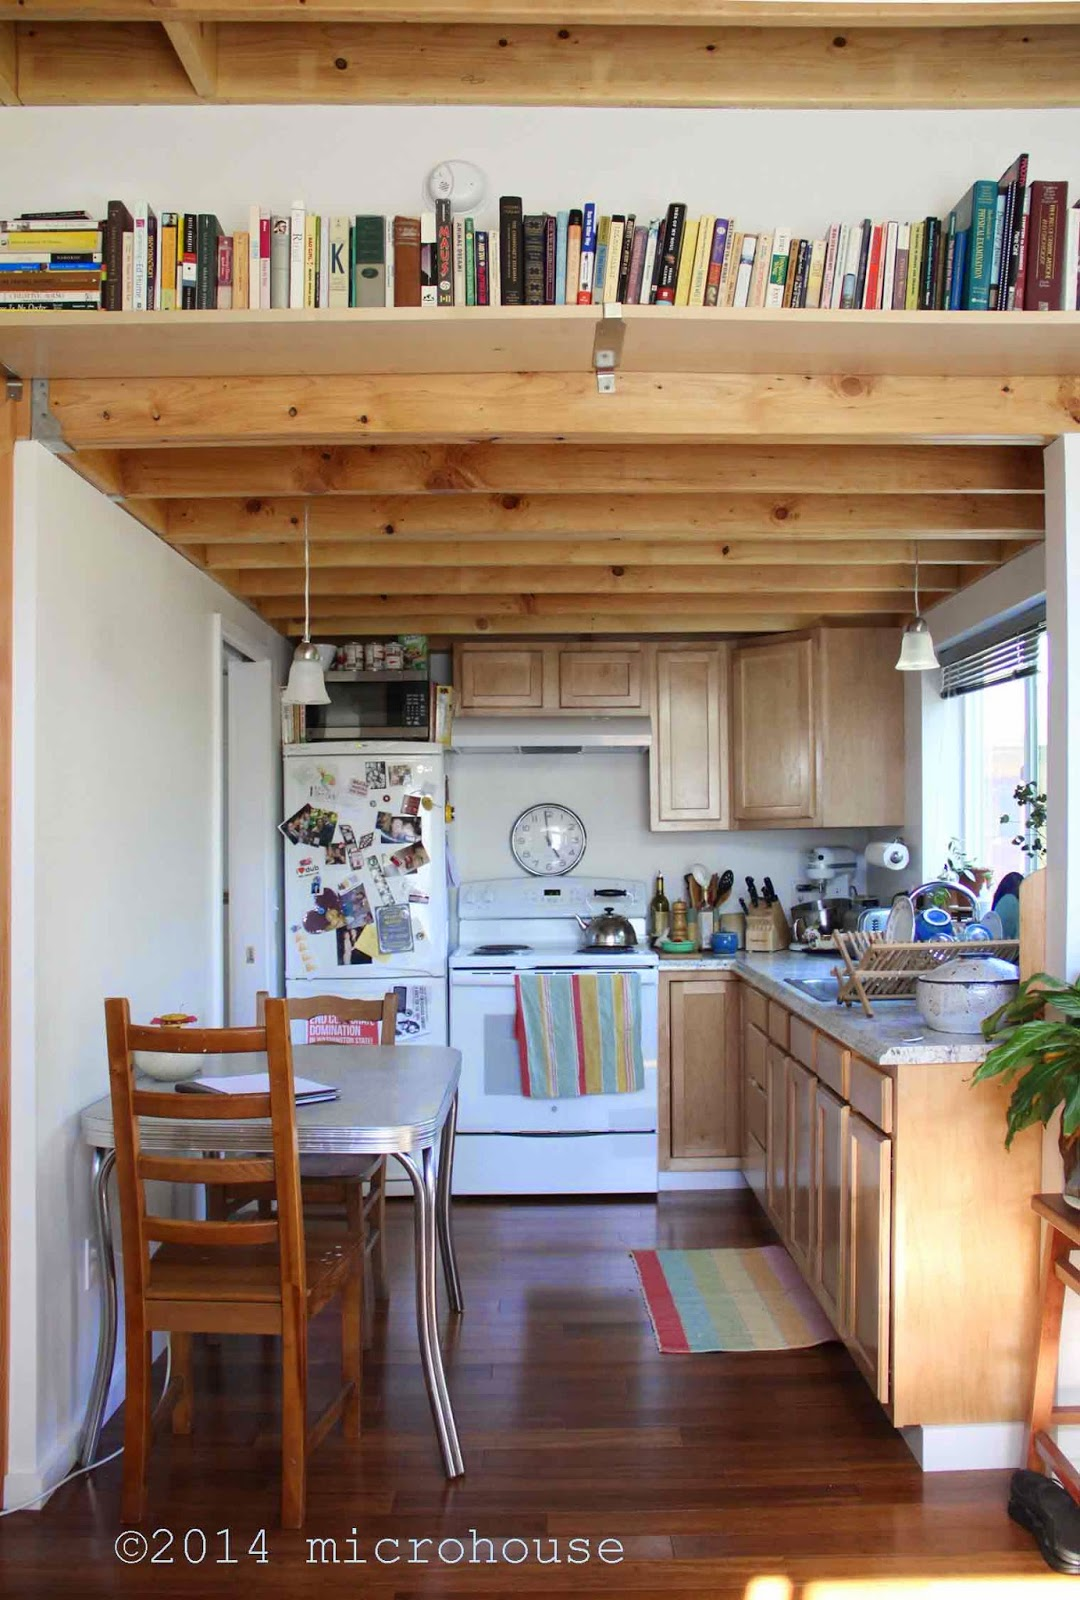 28 Most Popular Tina Kitchen That Will Help You Do More